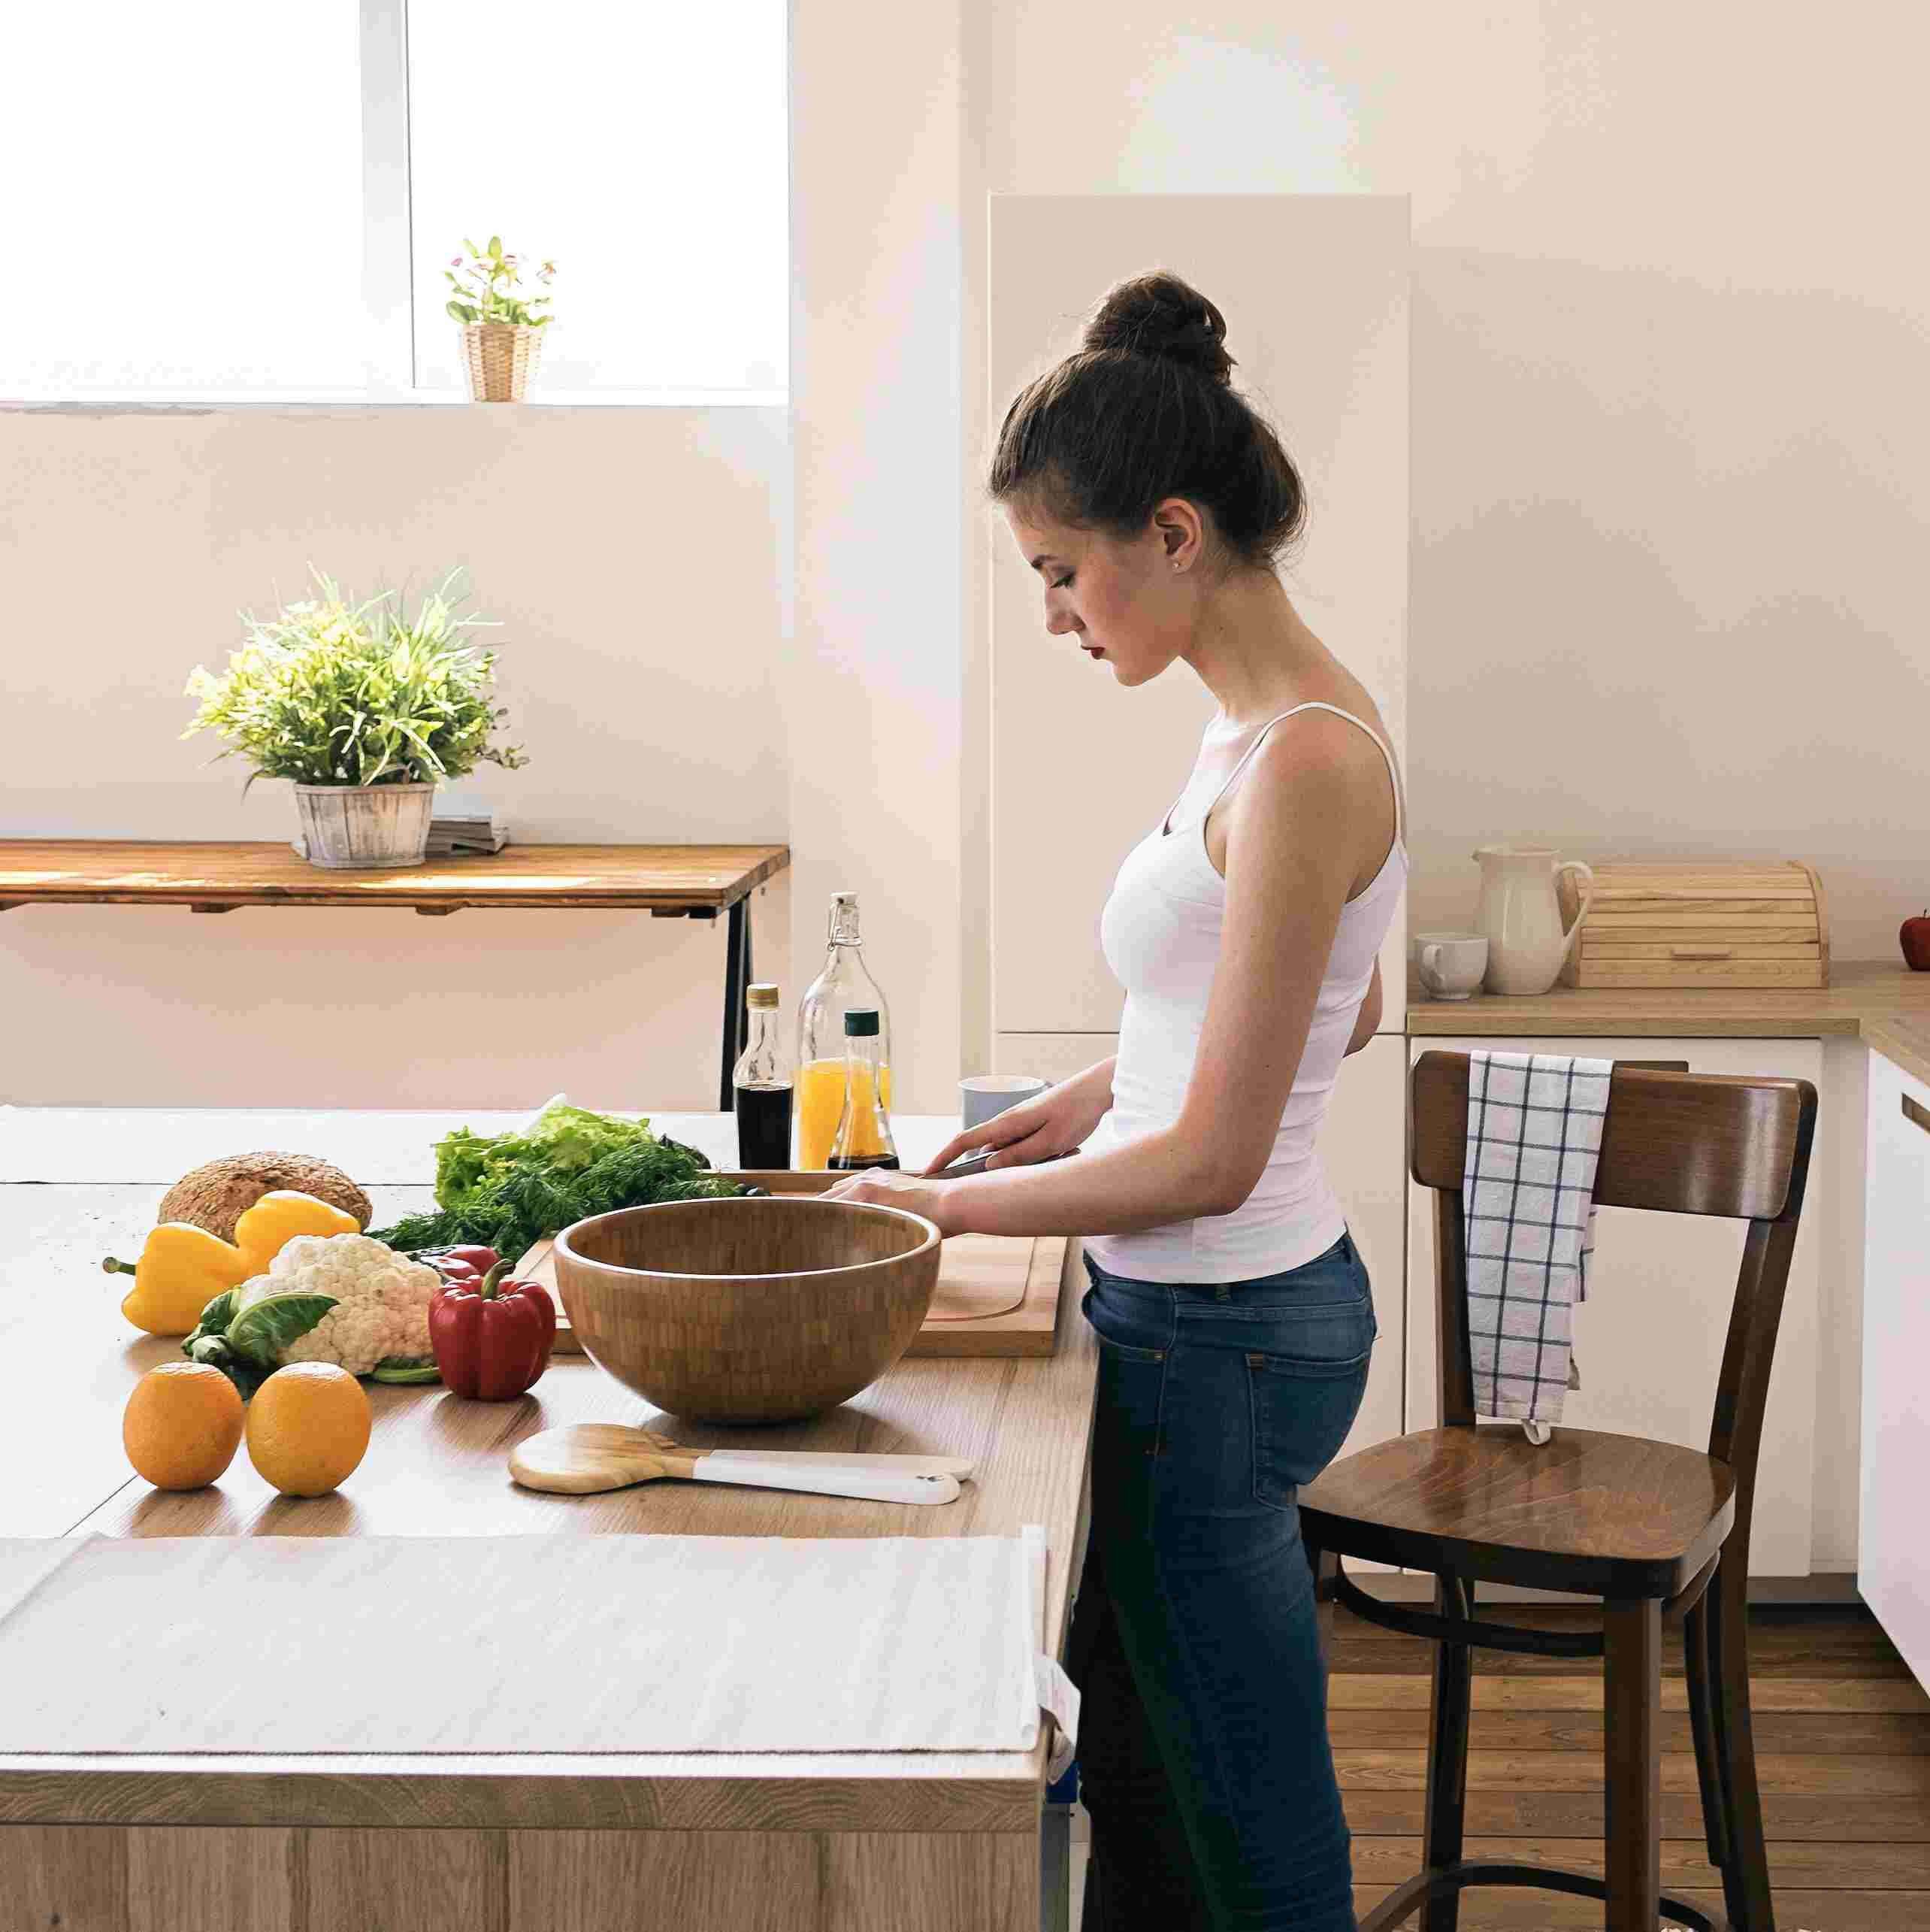 A girl is cutting fruit